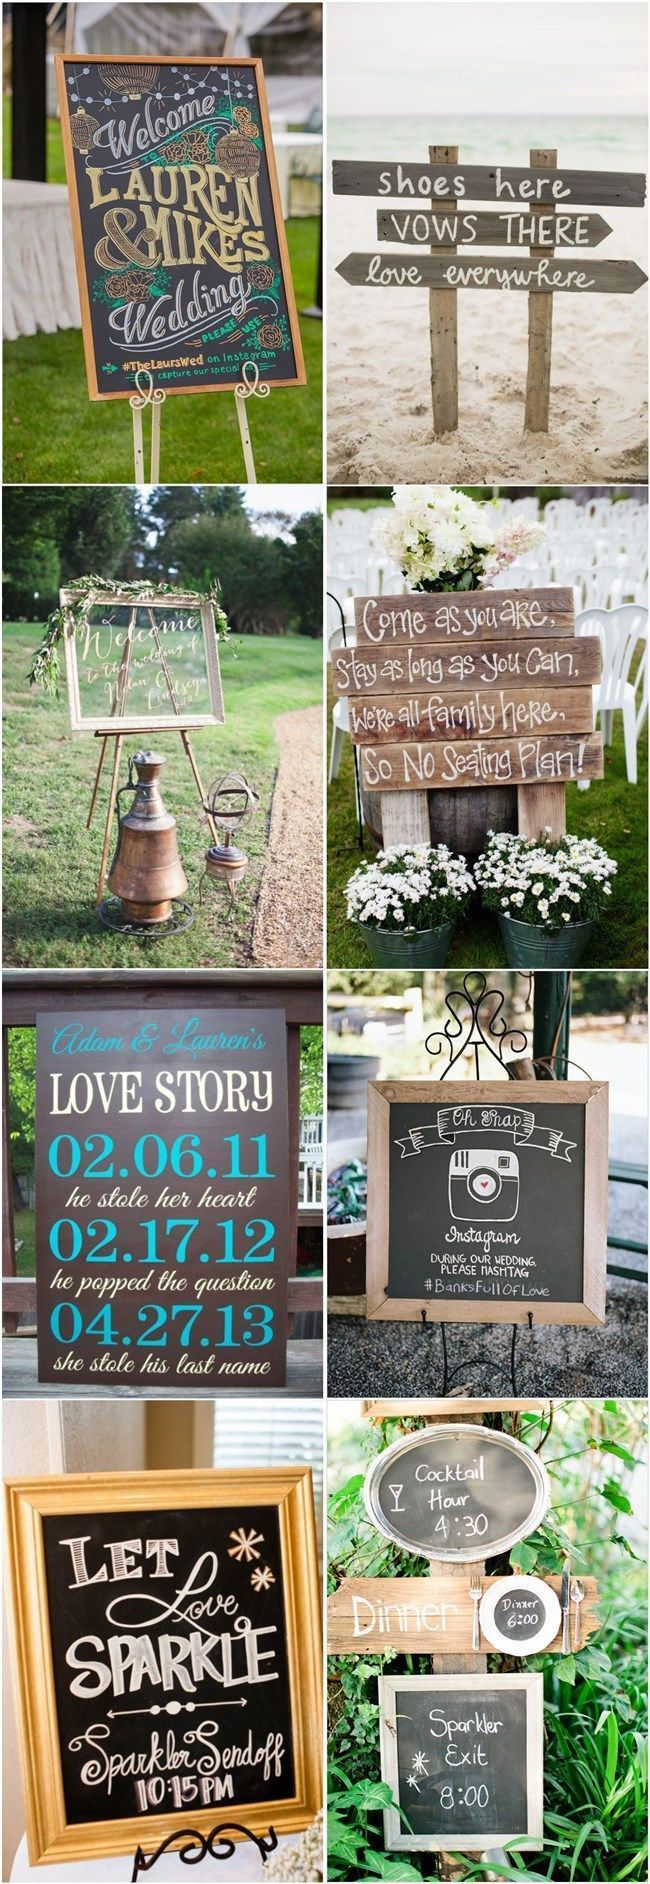 50s wedding decoration ideas   best Wedding Ideas for my BFF images on Pinterest  Marriage